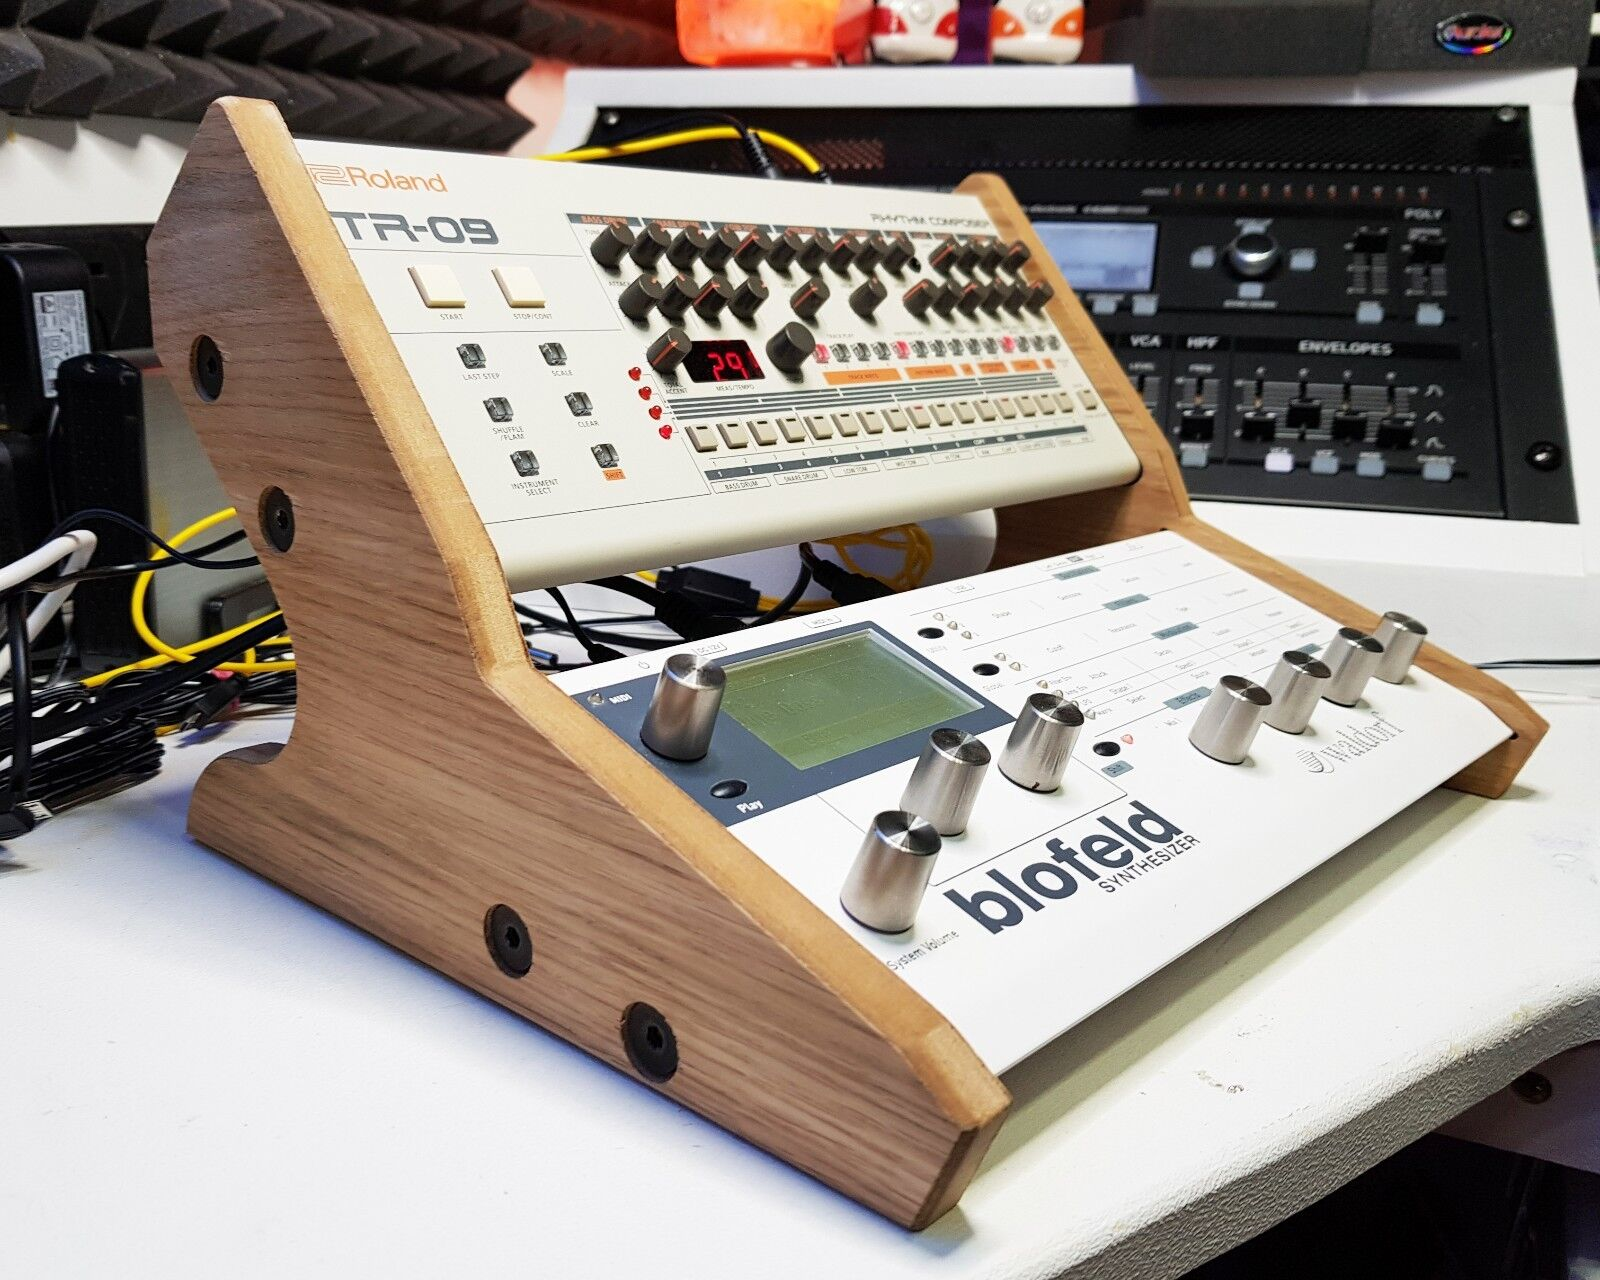 WALDORF AND ROLAND DUAL OAK VENEErot STAND FOR BOUTIQUE AND BLOFELD   PULSE 2